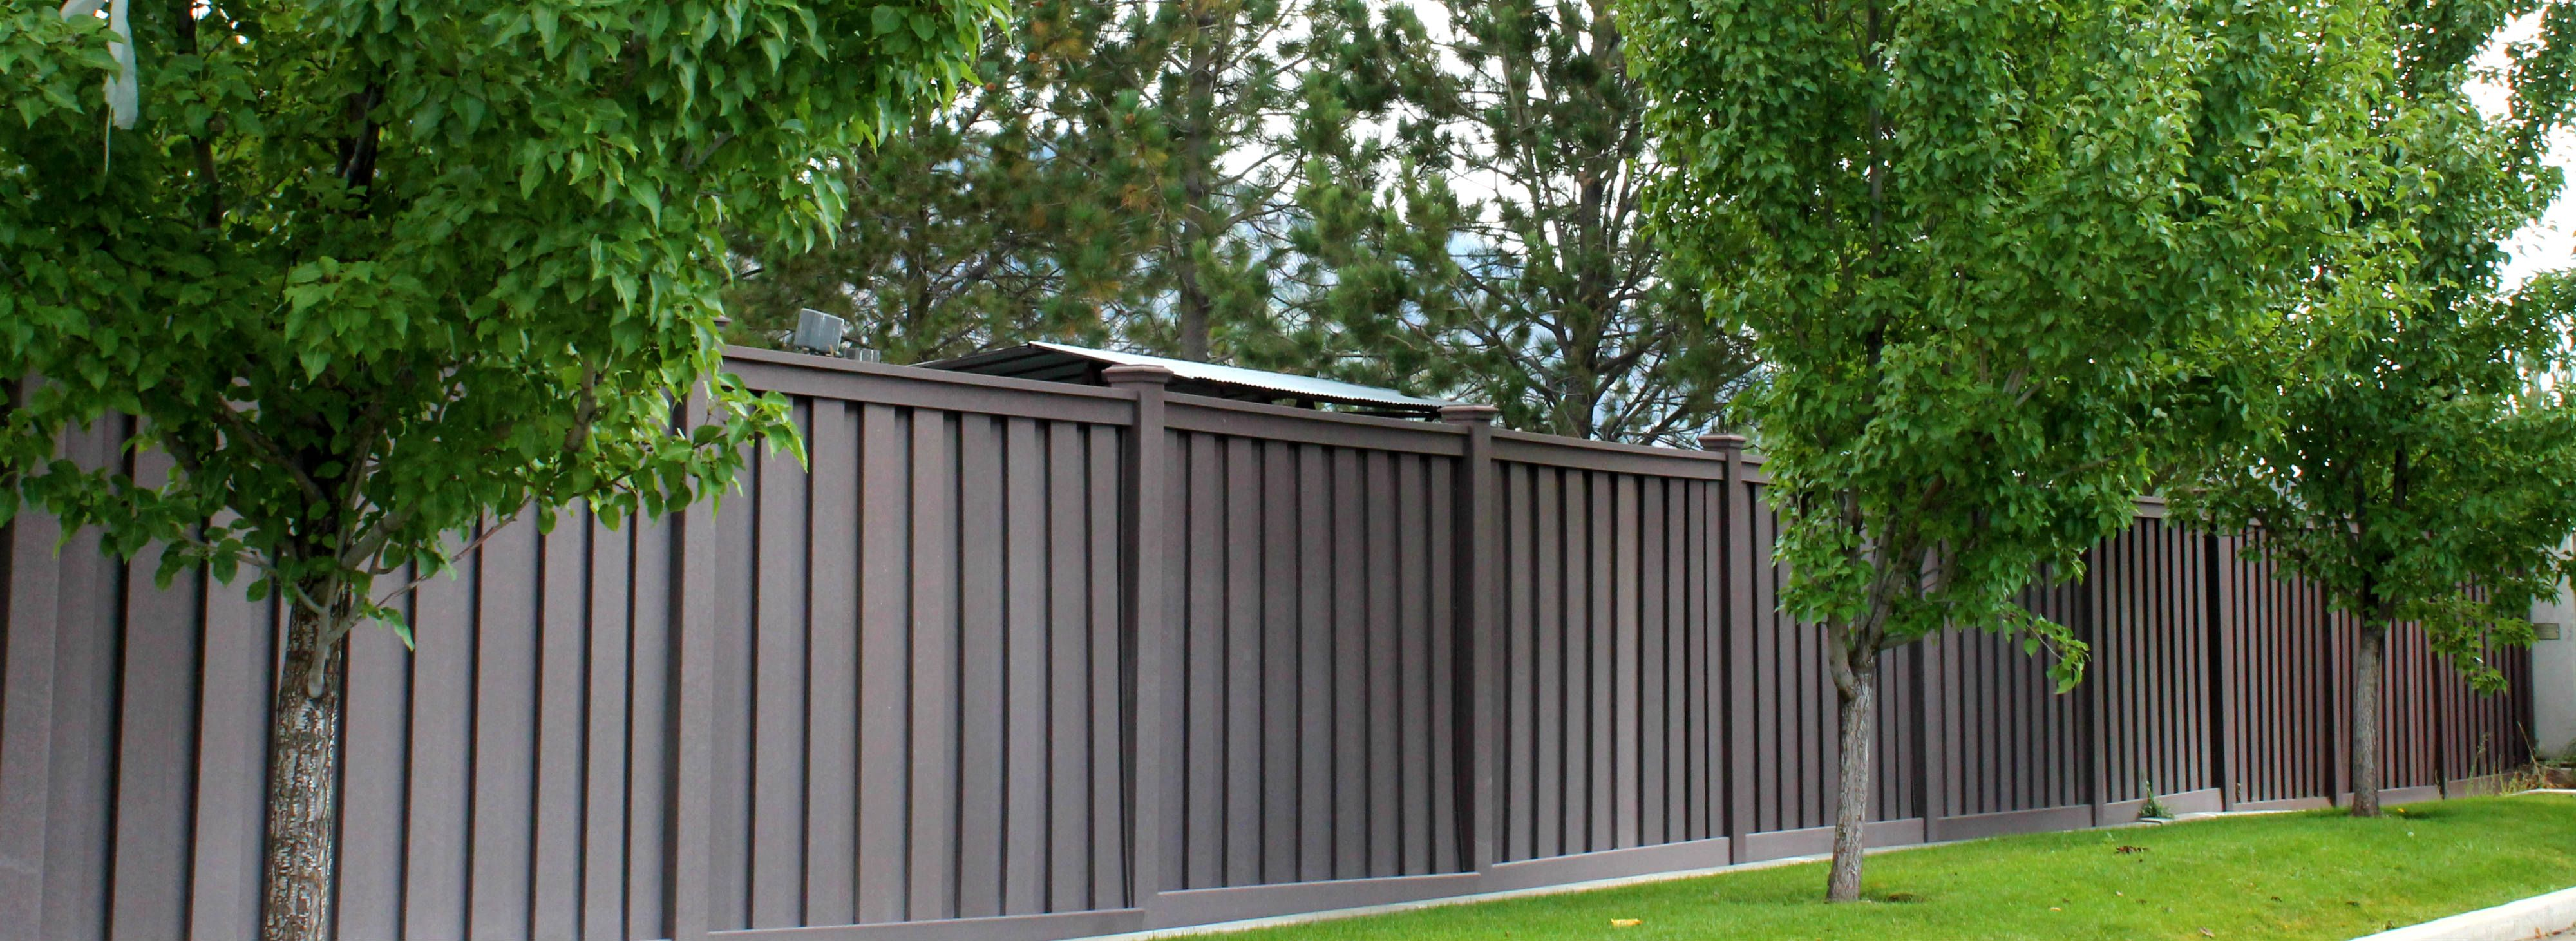 Trex Fencing Composite Commercial Installation Trex Is For Businesses Too Woodland Brown Trex Fencing Trex Fence